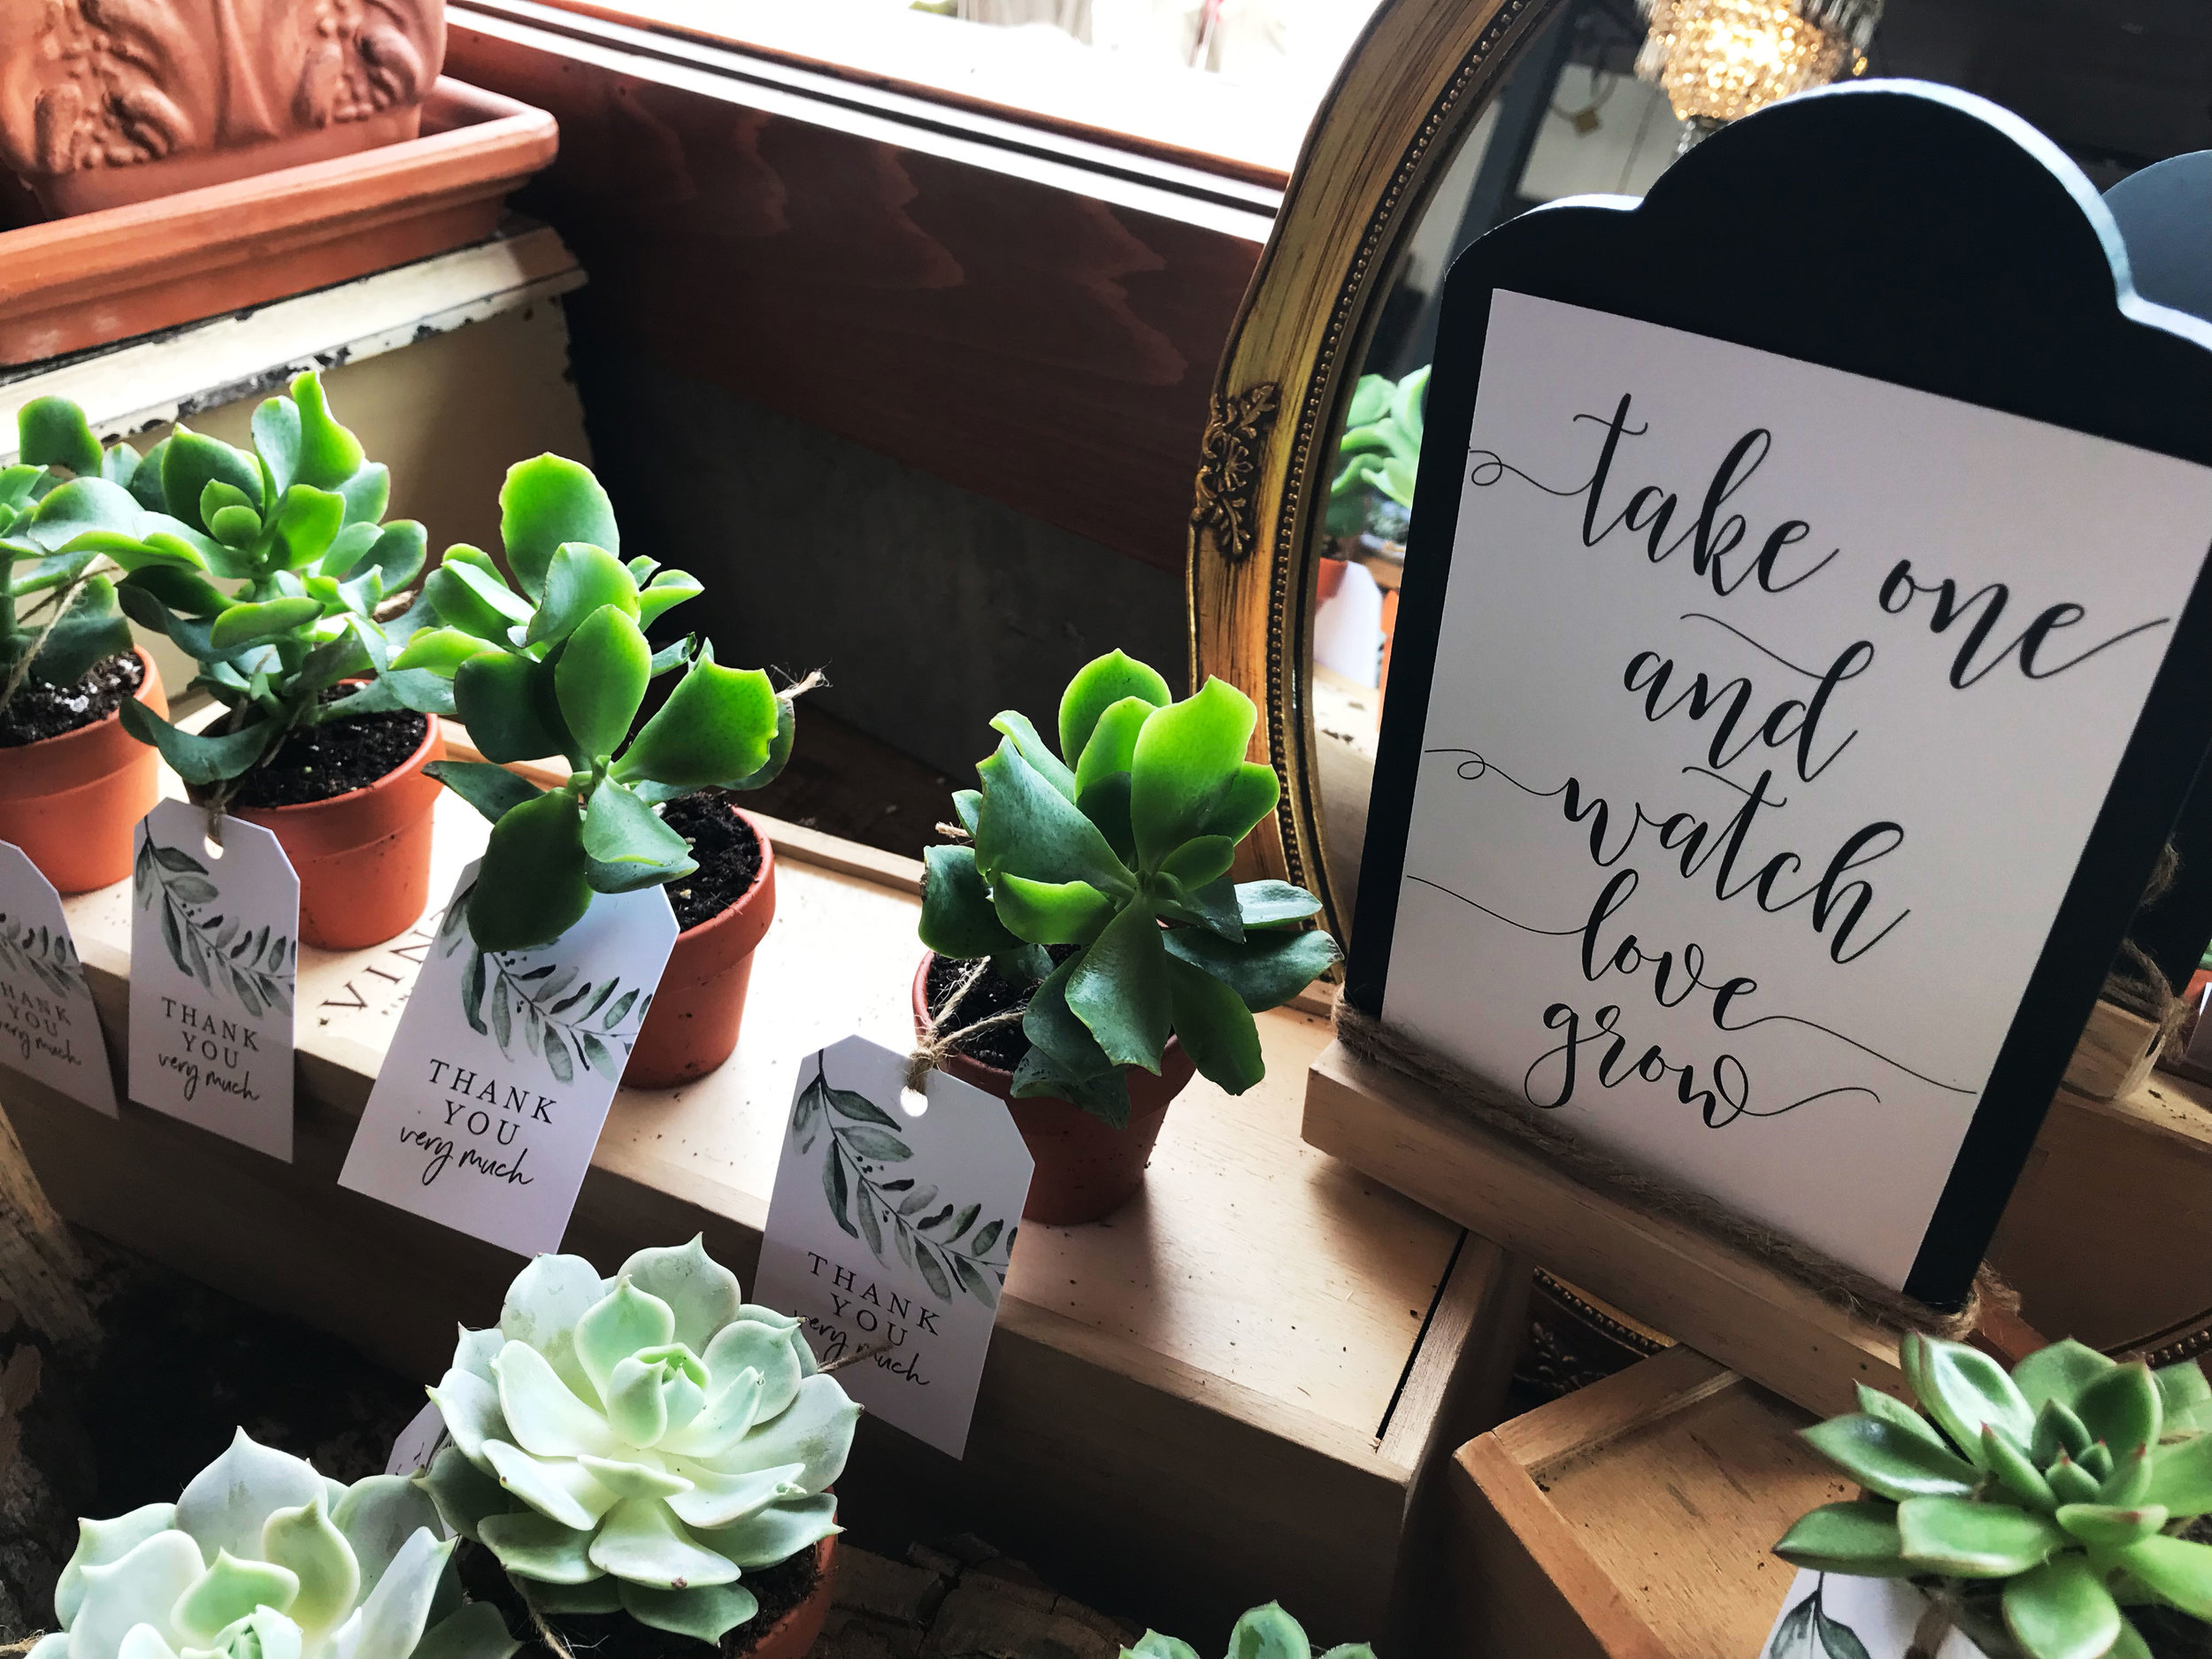 diana-andres-wedding-favours-succulent-plants-greenery-thank-you-tags.jpg